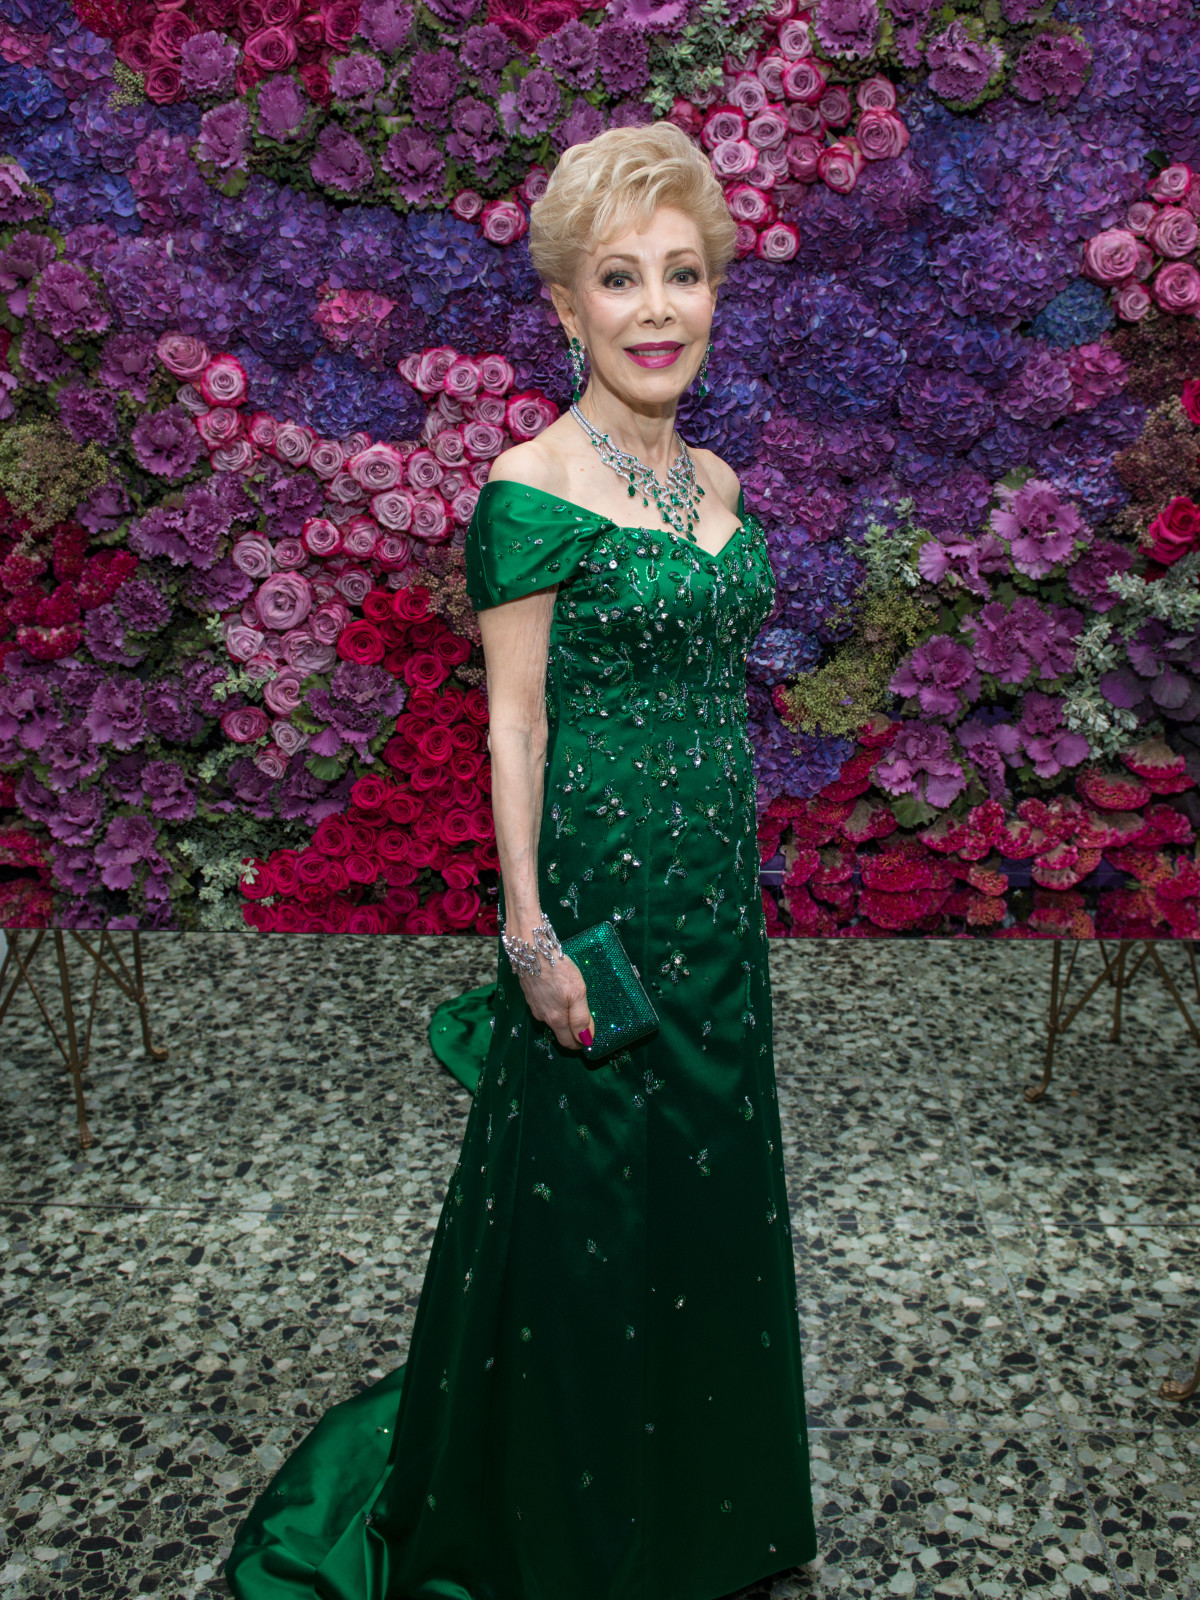 Houston, MFAH Oscar de la Renta Ball, Margaret Alkek Williams, Ripetta of Rome